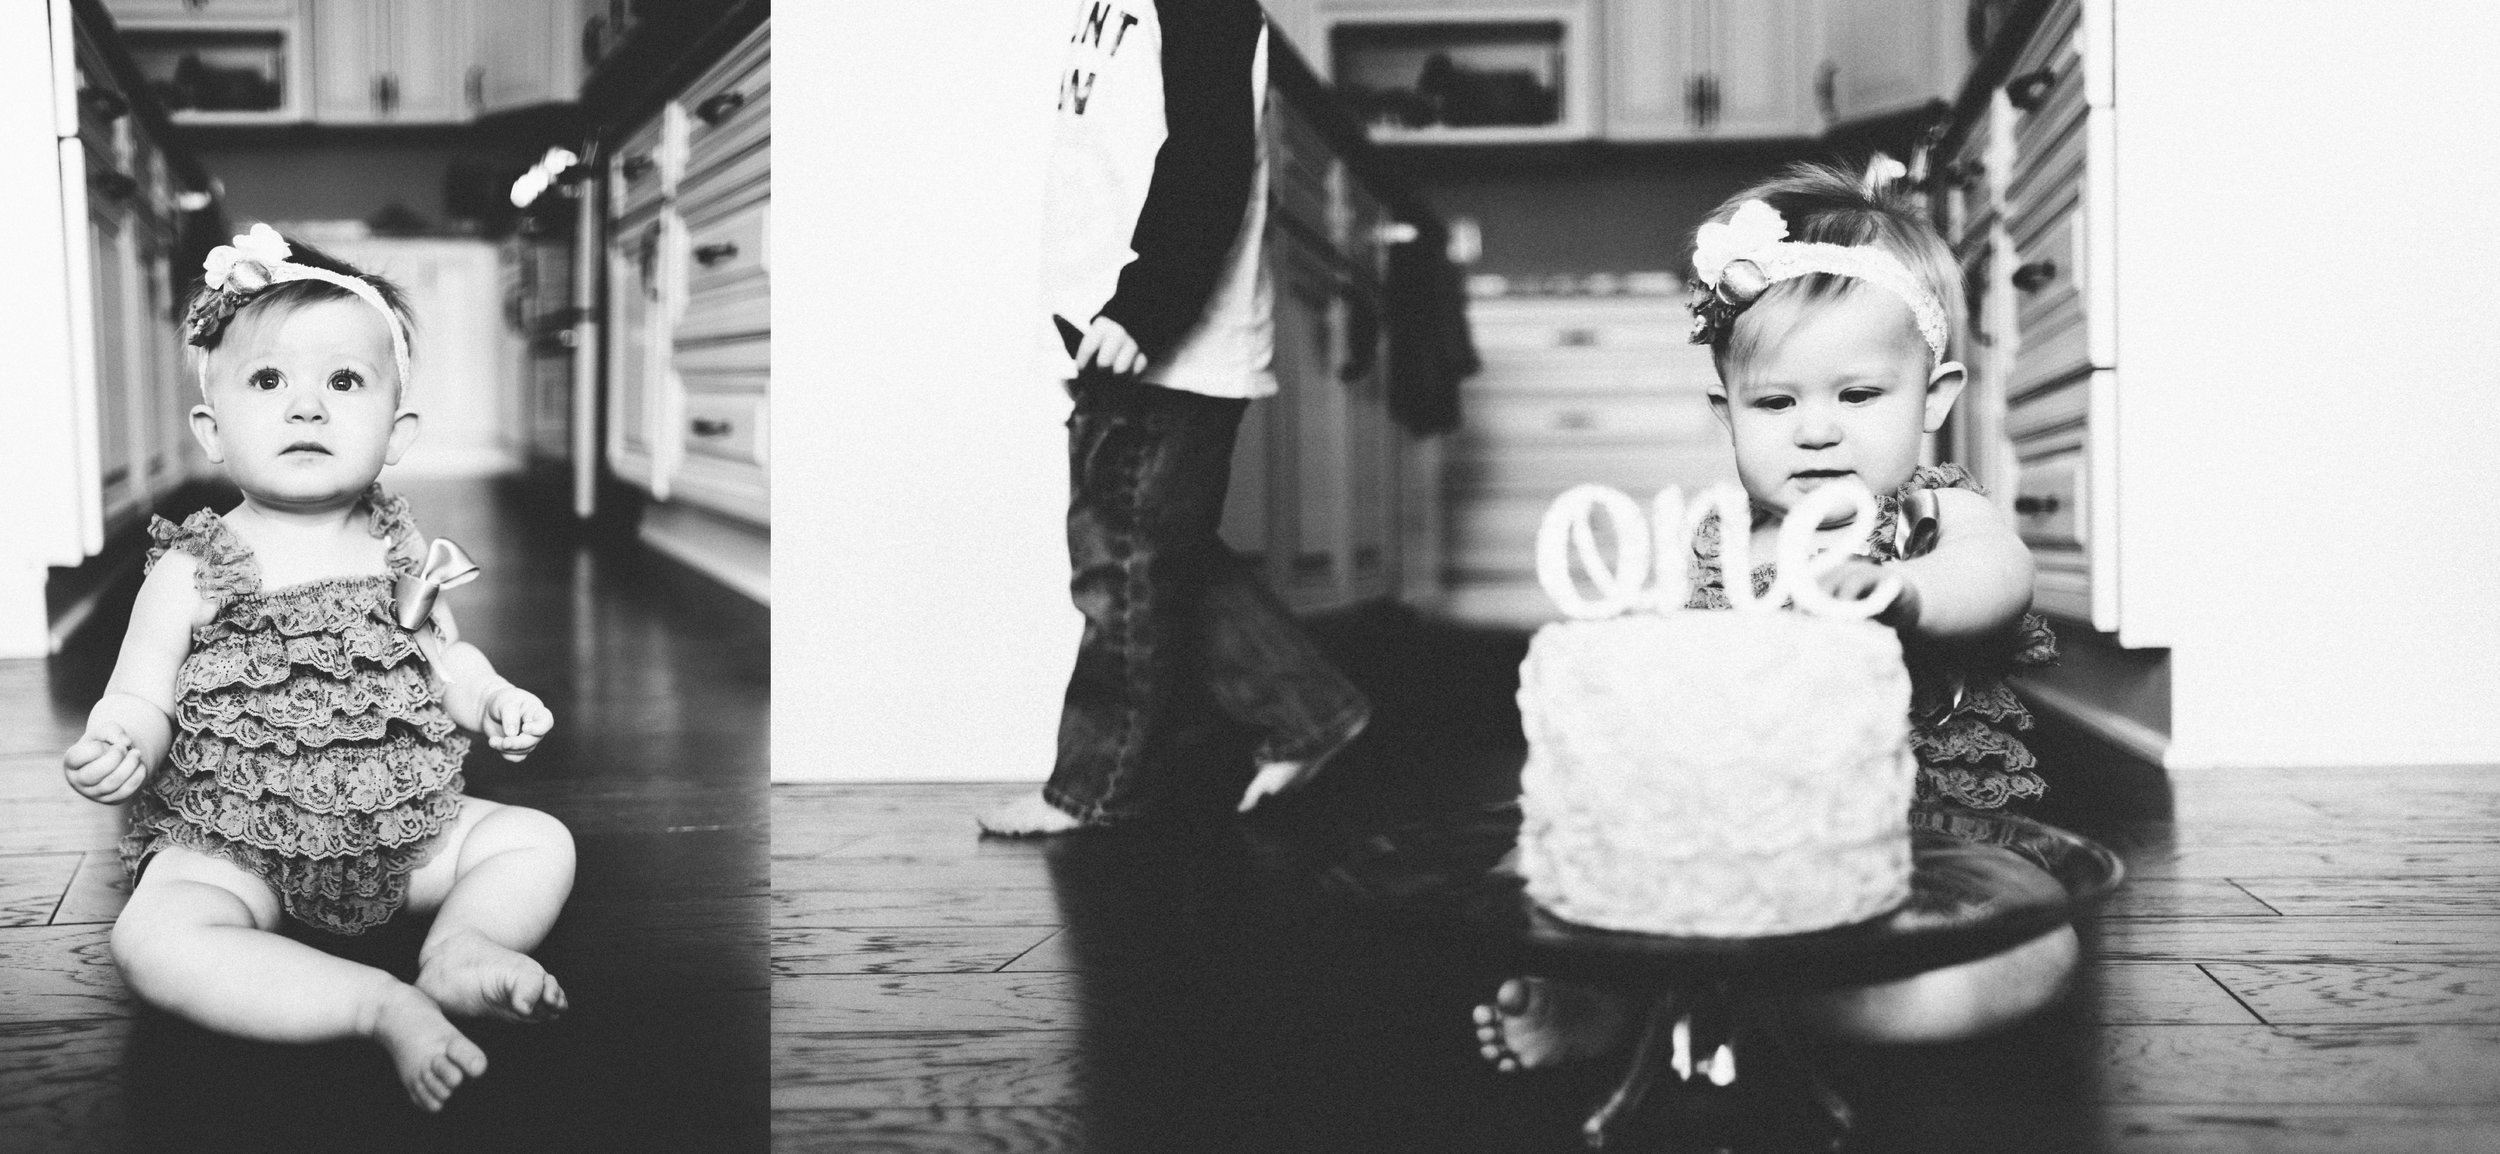 Michigan Family Photographer First Birthday Cakesmash Lifestyle Black and White Indoors (18).jpg